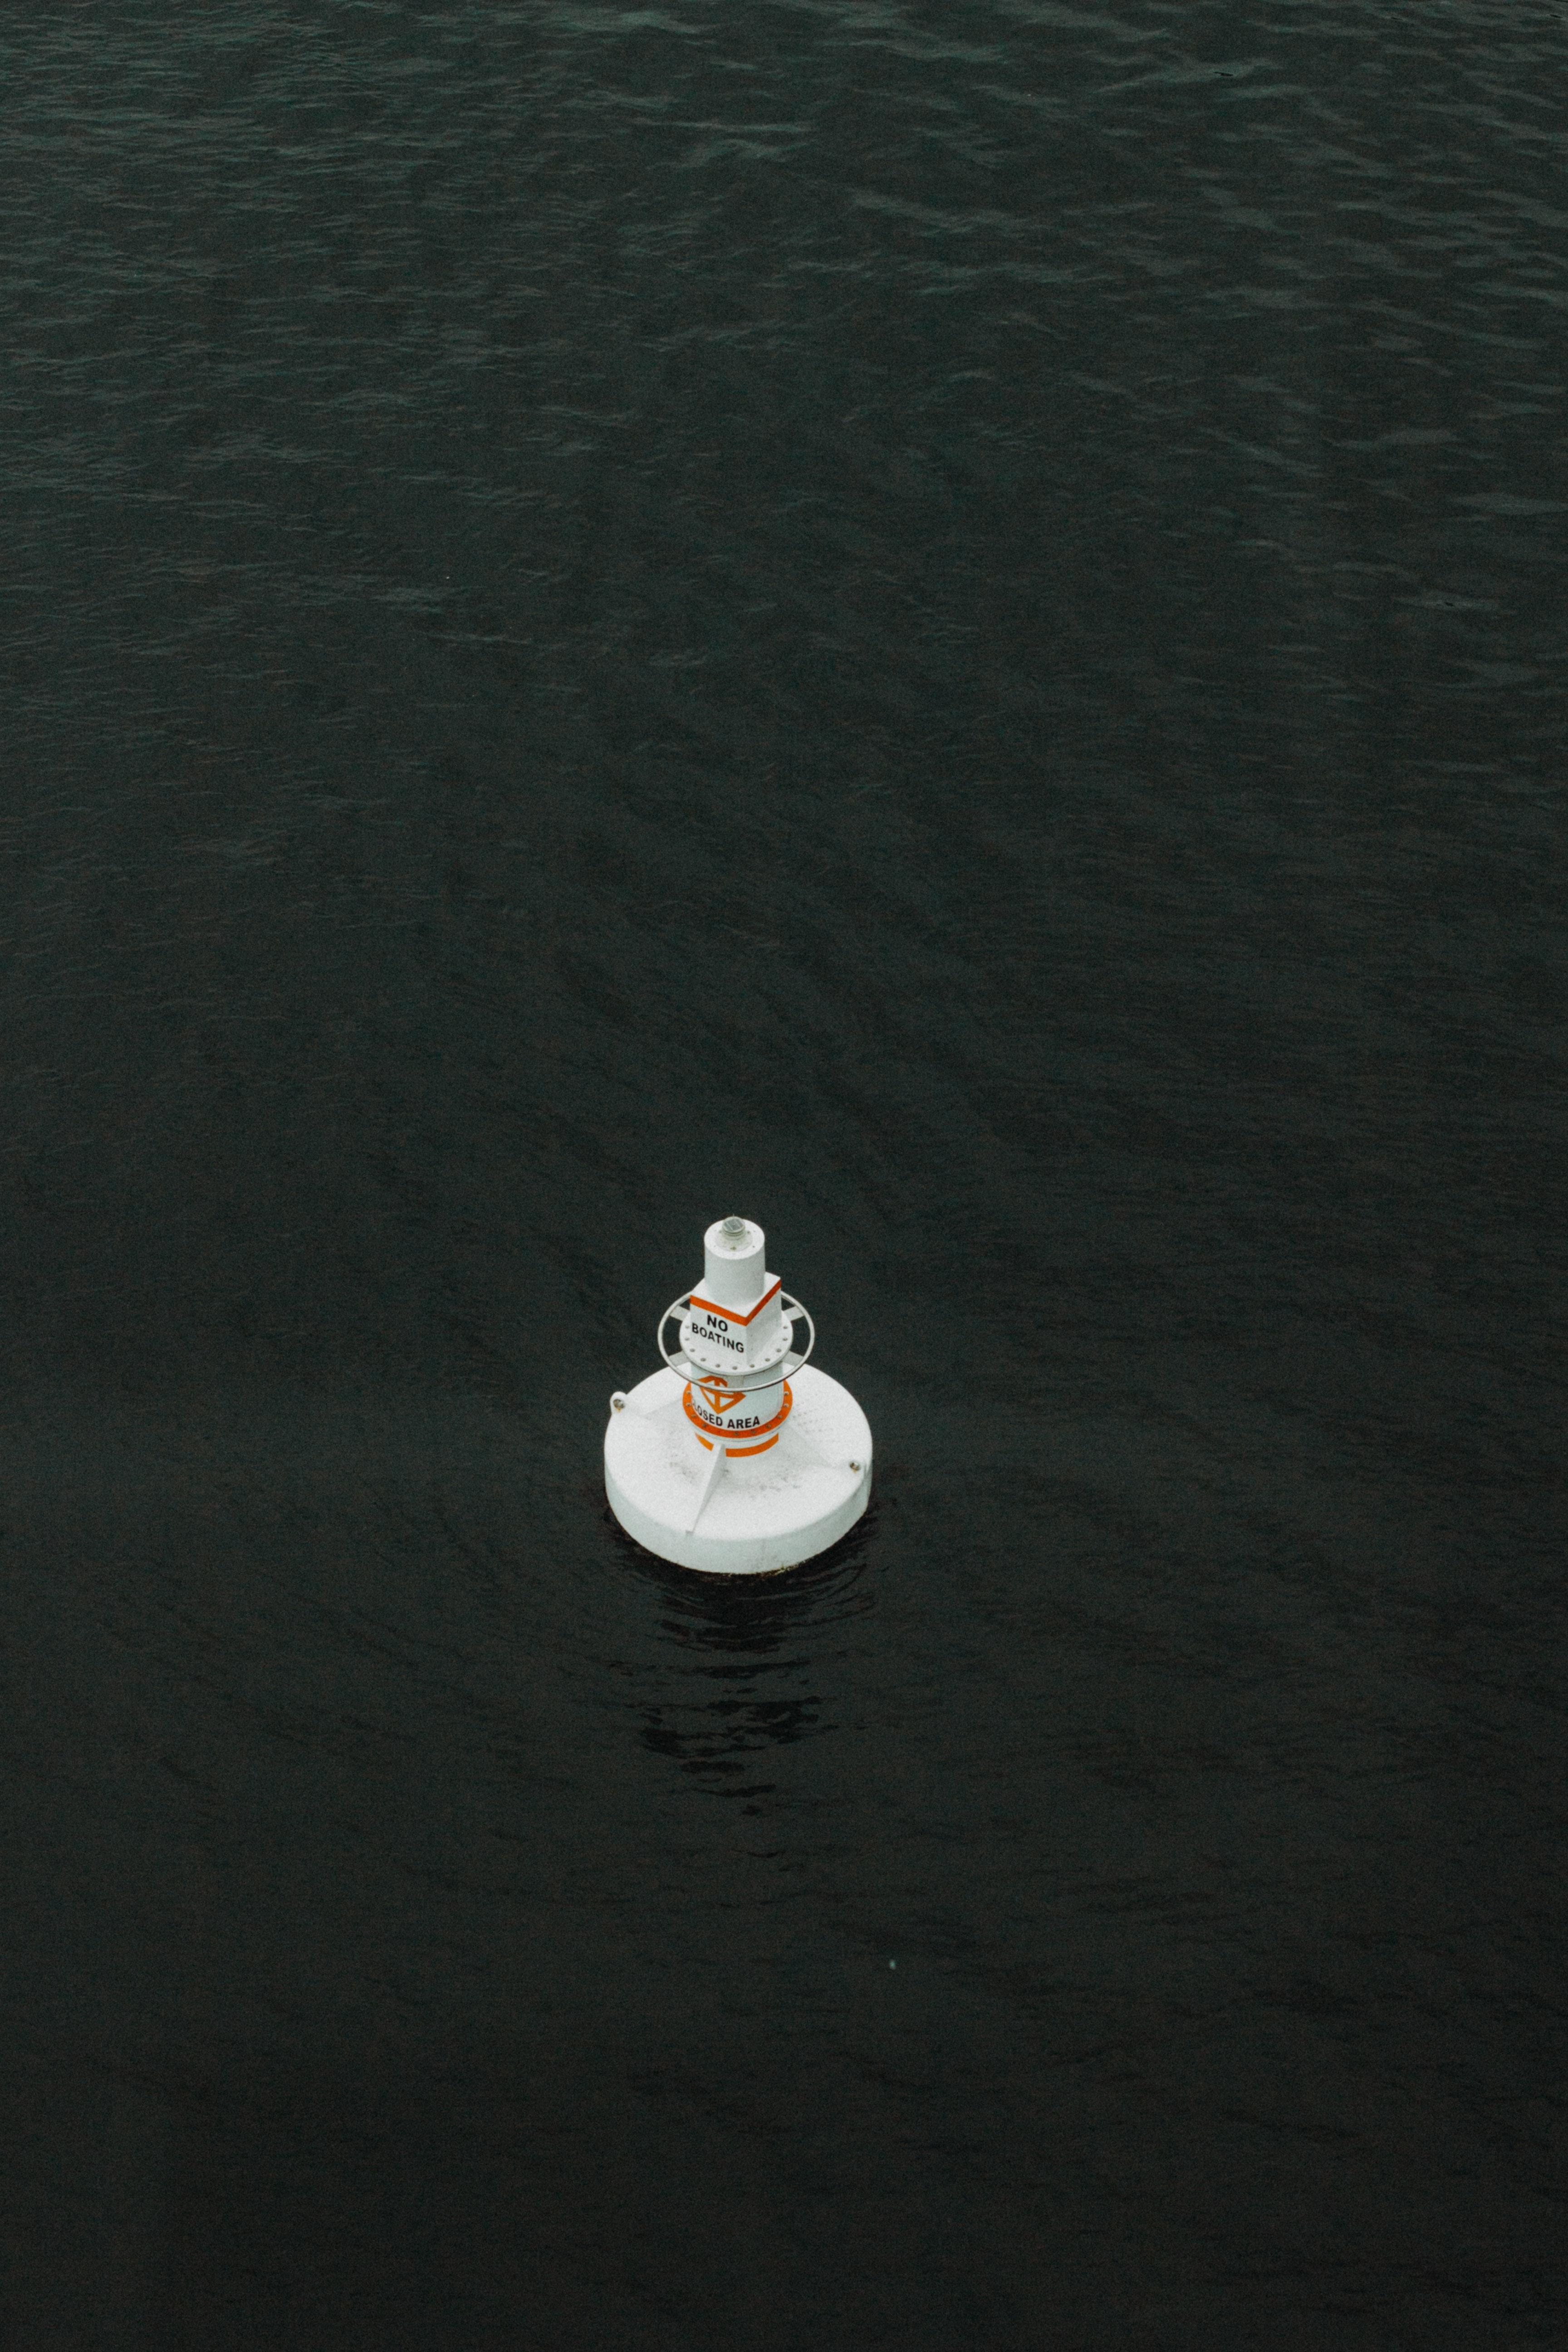 round white ornament on top of body of water floating